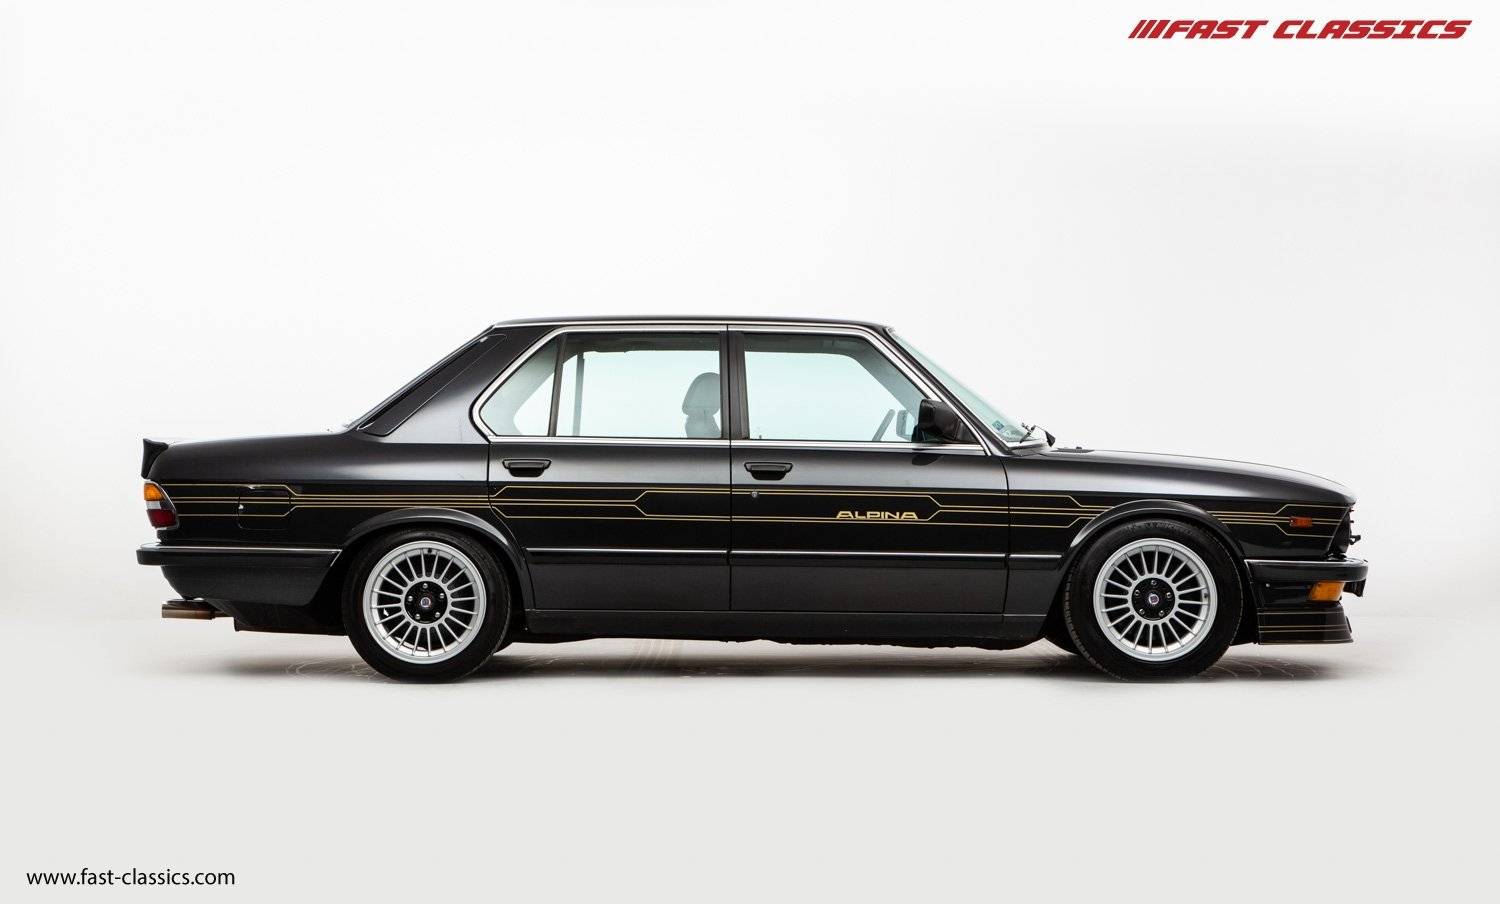 1986 ALPINA B7 TURBO/1 // 1 OF 42 HIGH POWER CATALYST CARS  For Sale (picture 1 of 24)